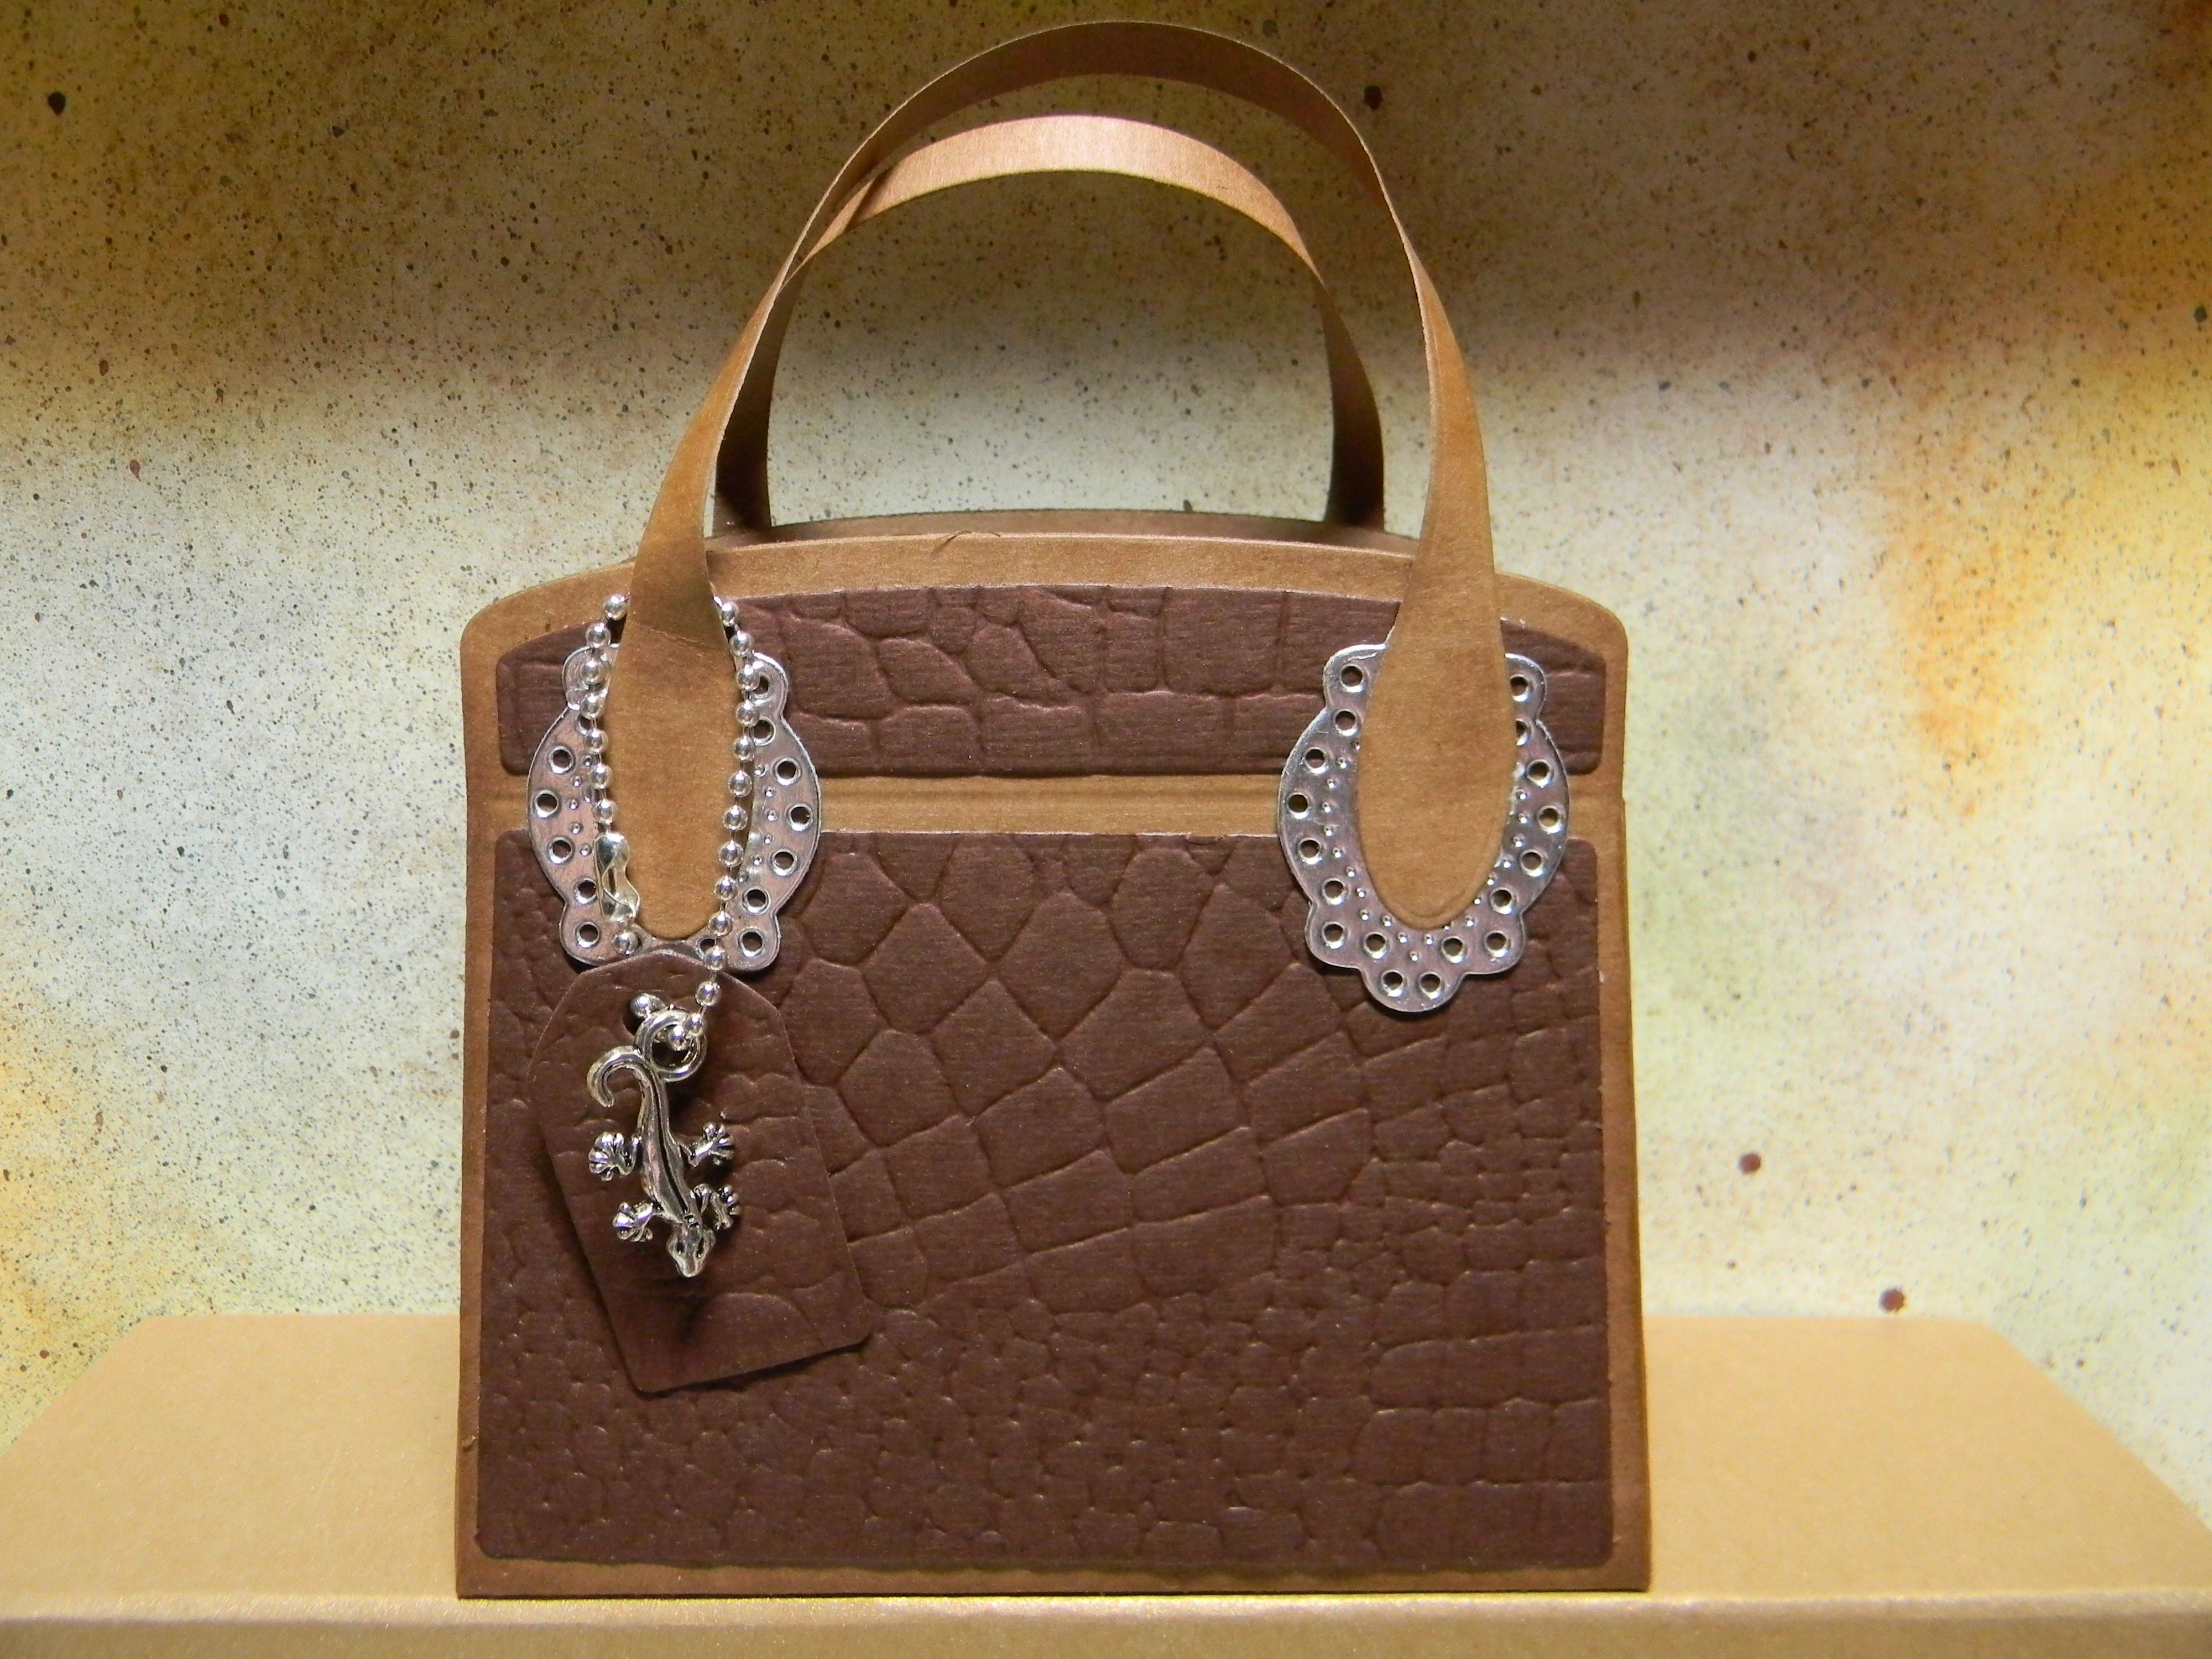 Tonic Kensington Handbag Die Set By Lizzy Coppus With Images